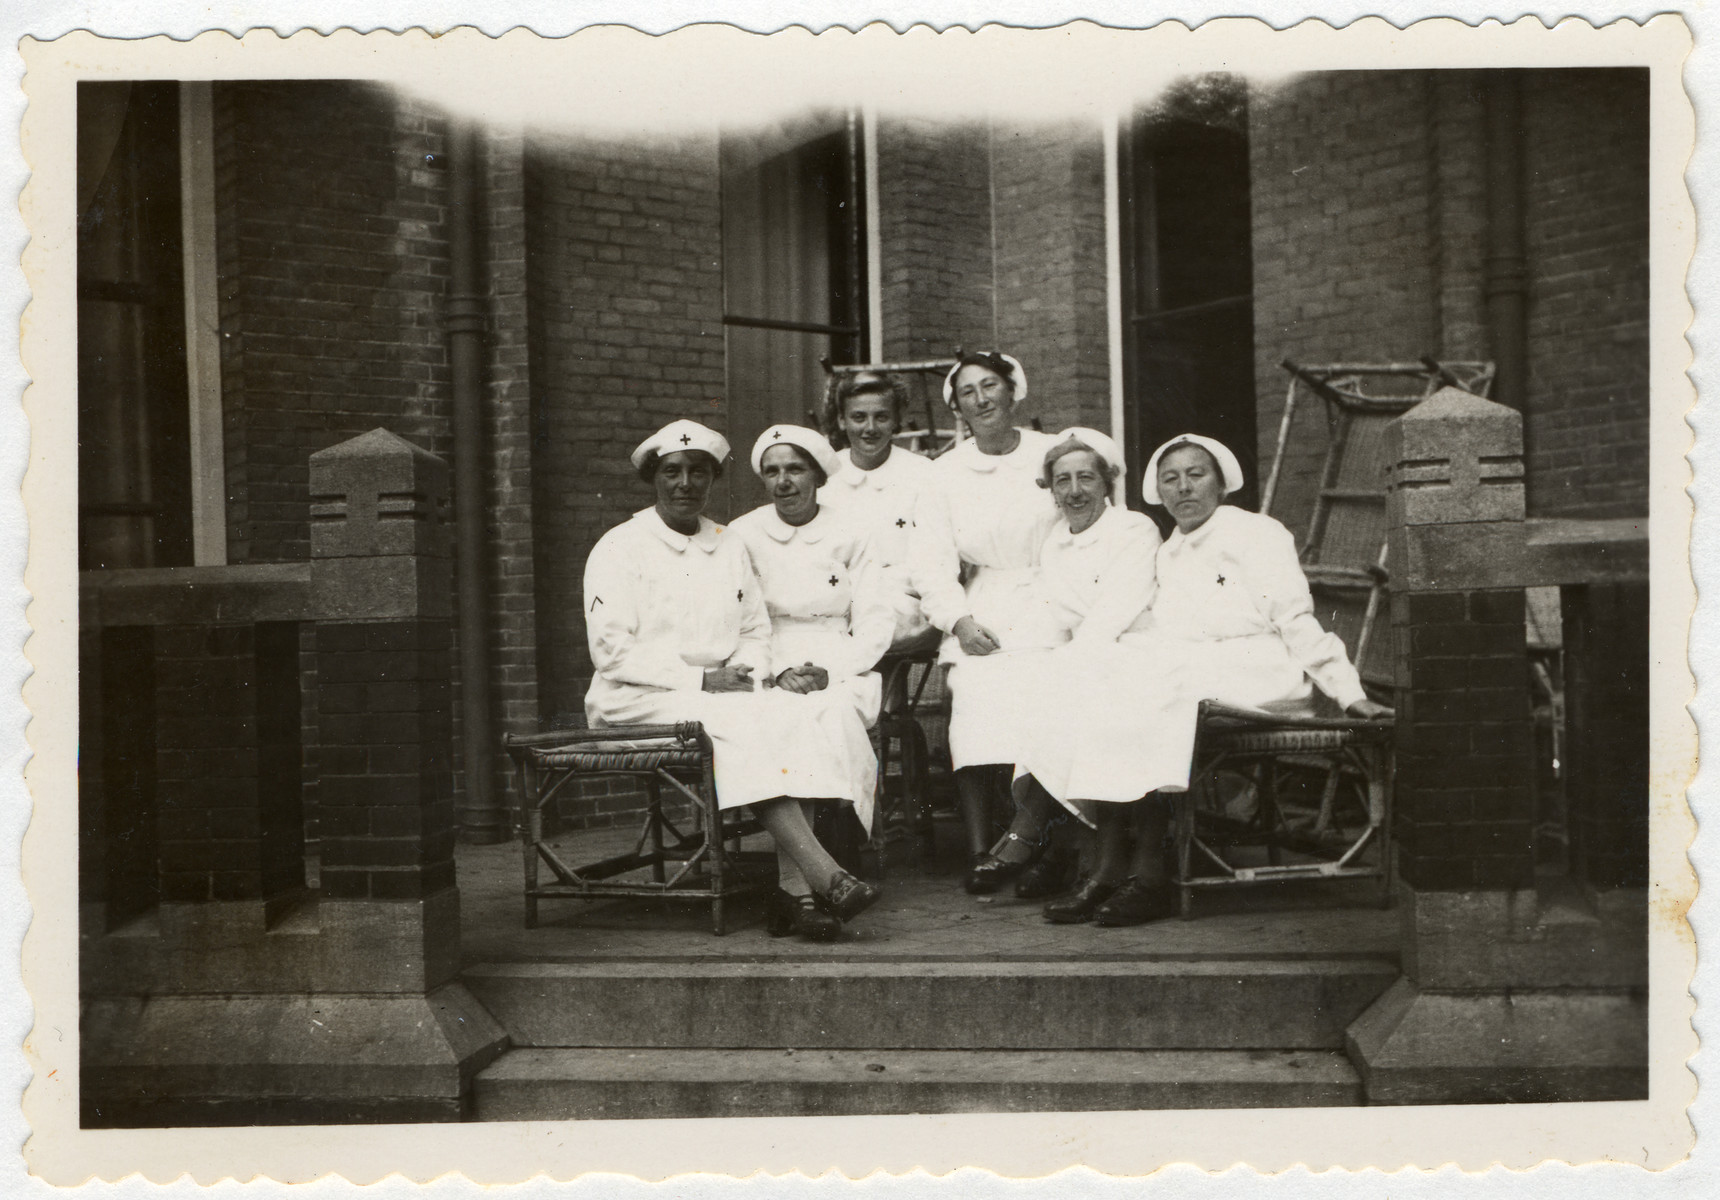 Group portrait of Dutch Red Cross nurses.  Among those pictured is Minnie van Dam.